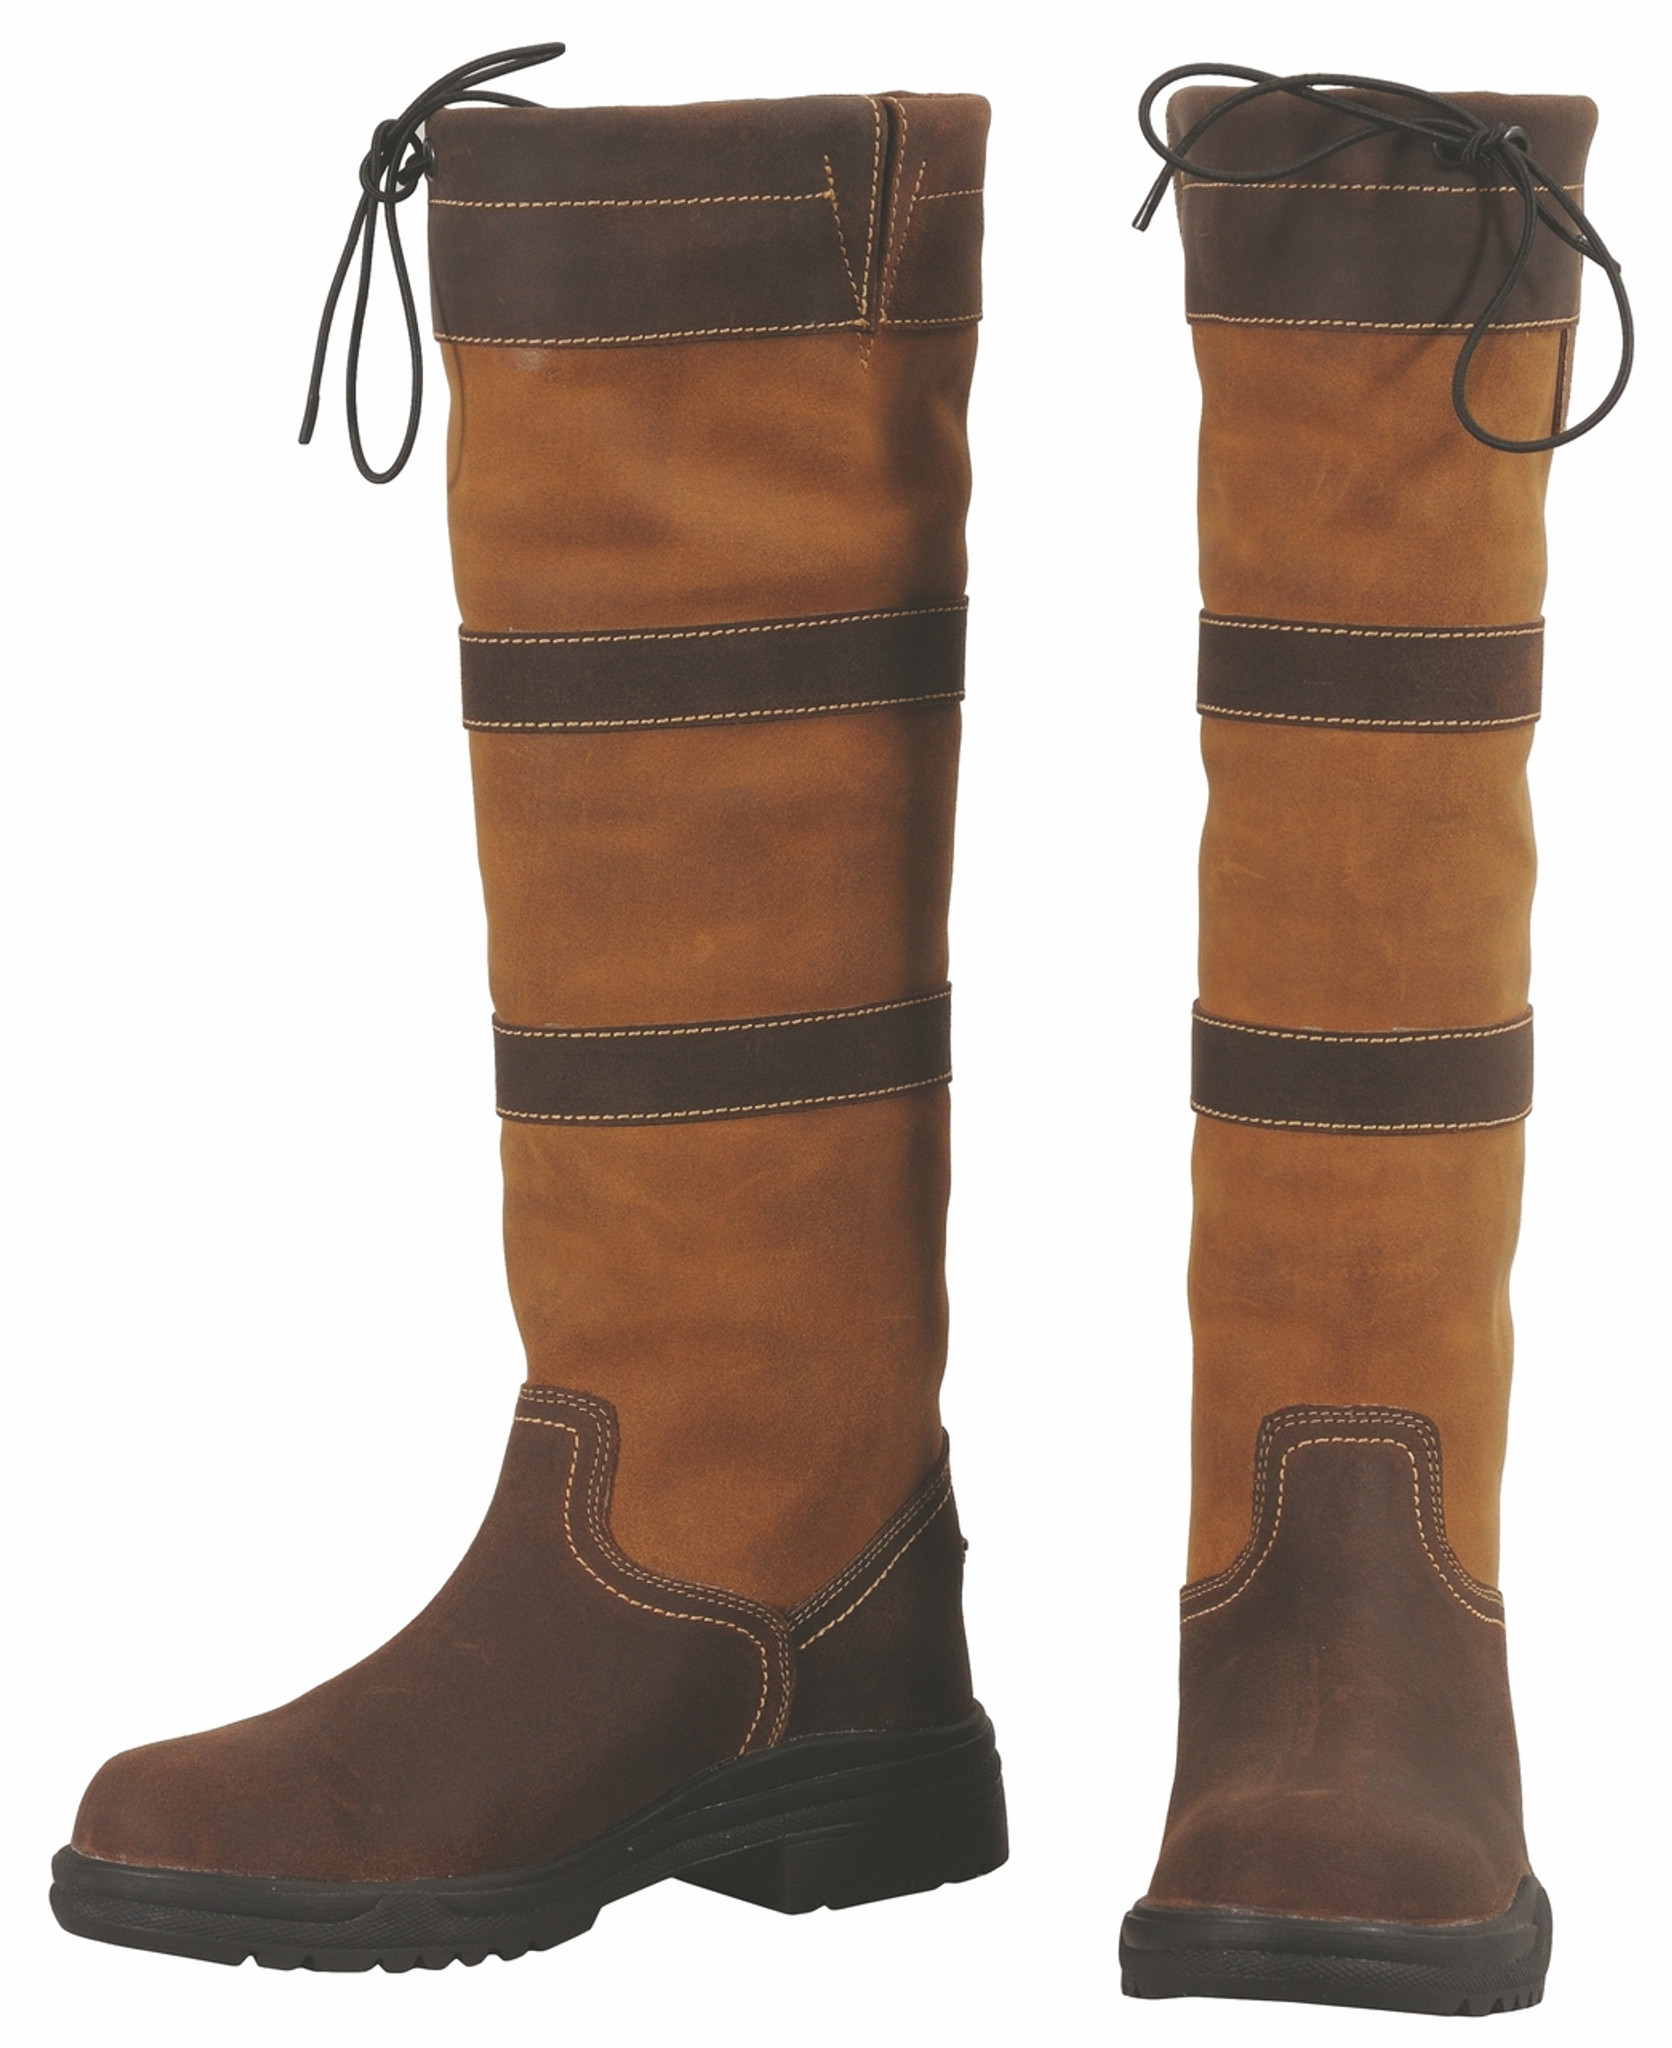 Tuffrider Ladies Lexington Waterproof Tall Boots Contrasting Suede